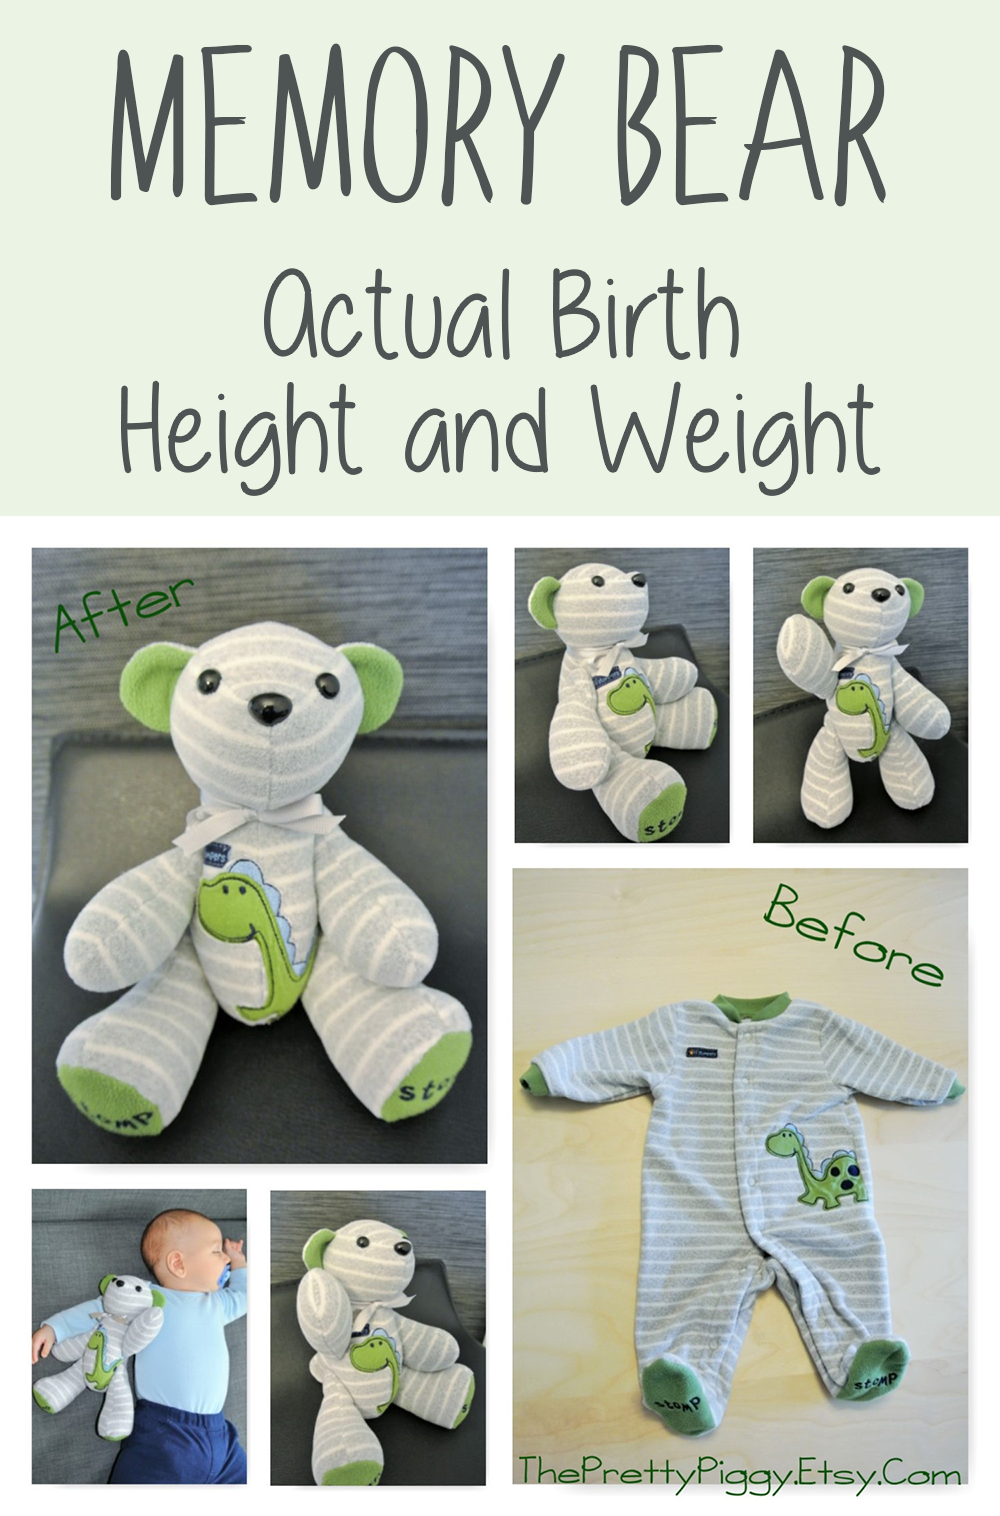 Full Term Memory Bear Actual Birth Height Weight Baby Cans Rattle Stick This Adorable Teddy Is Made From Your Childs Clothing Not Only Does Feature Little Ones Cute Outfit It Also The And